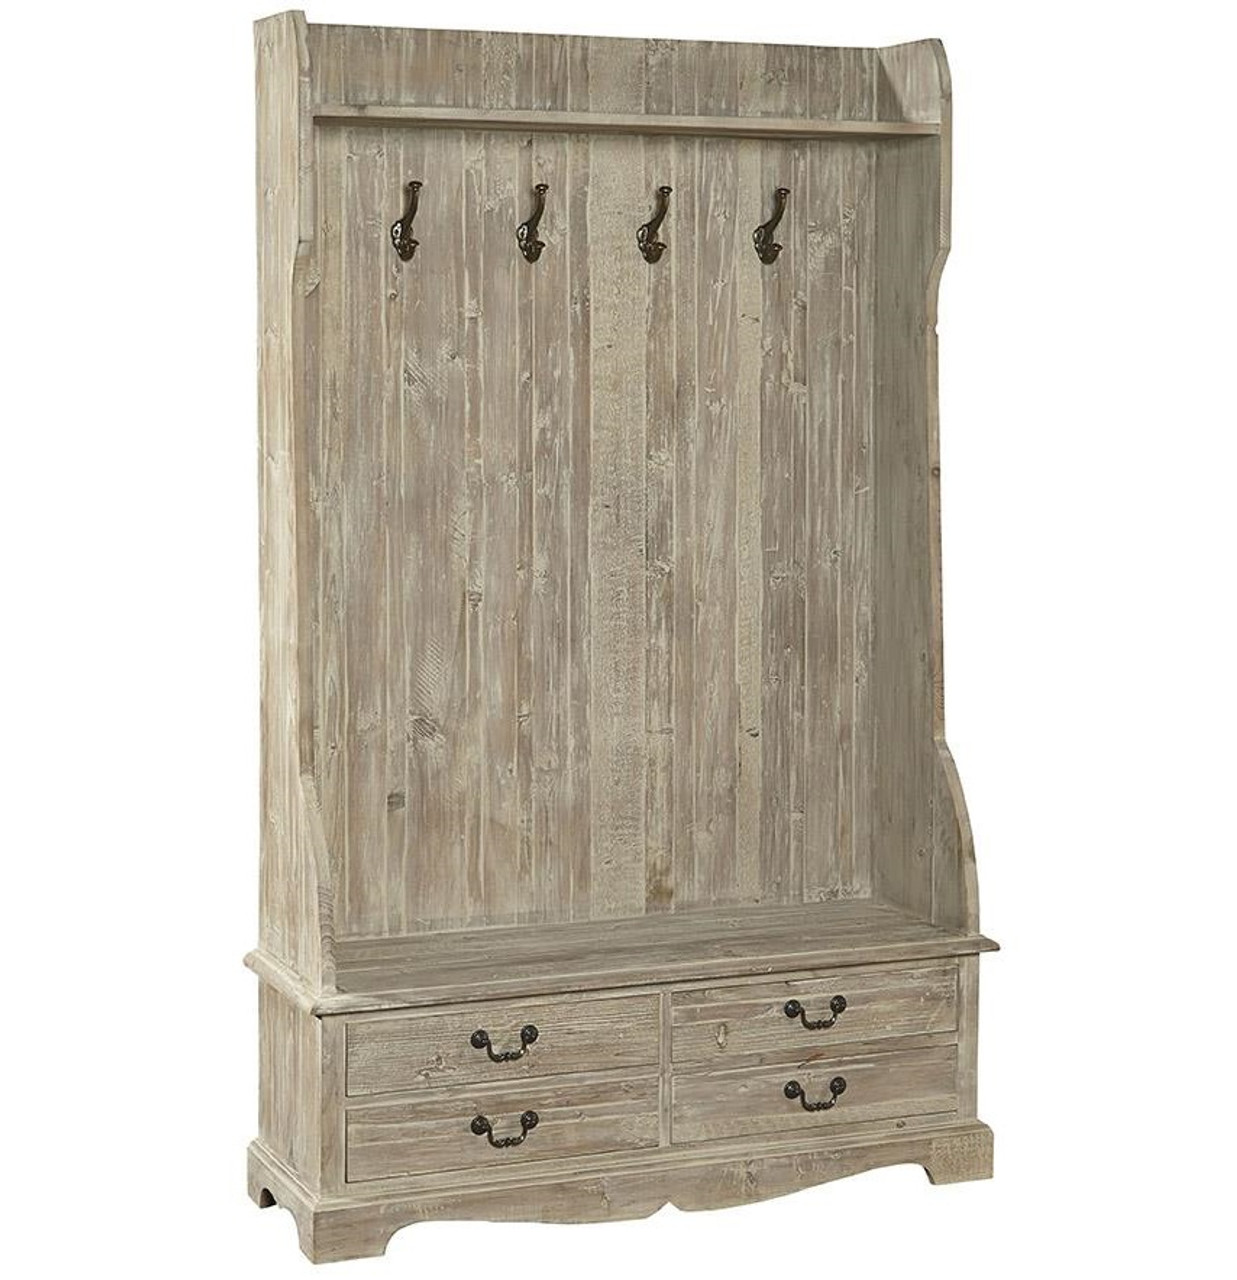 French Country Rustic Entry Storage Bench With Coat Rack Zin Home